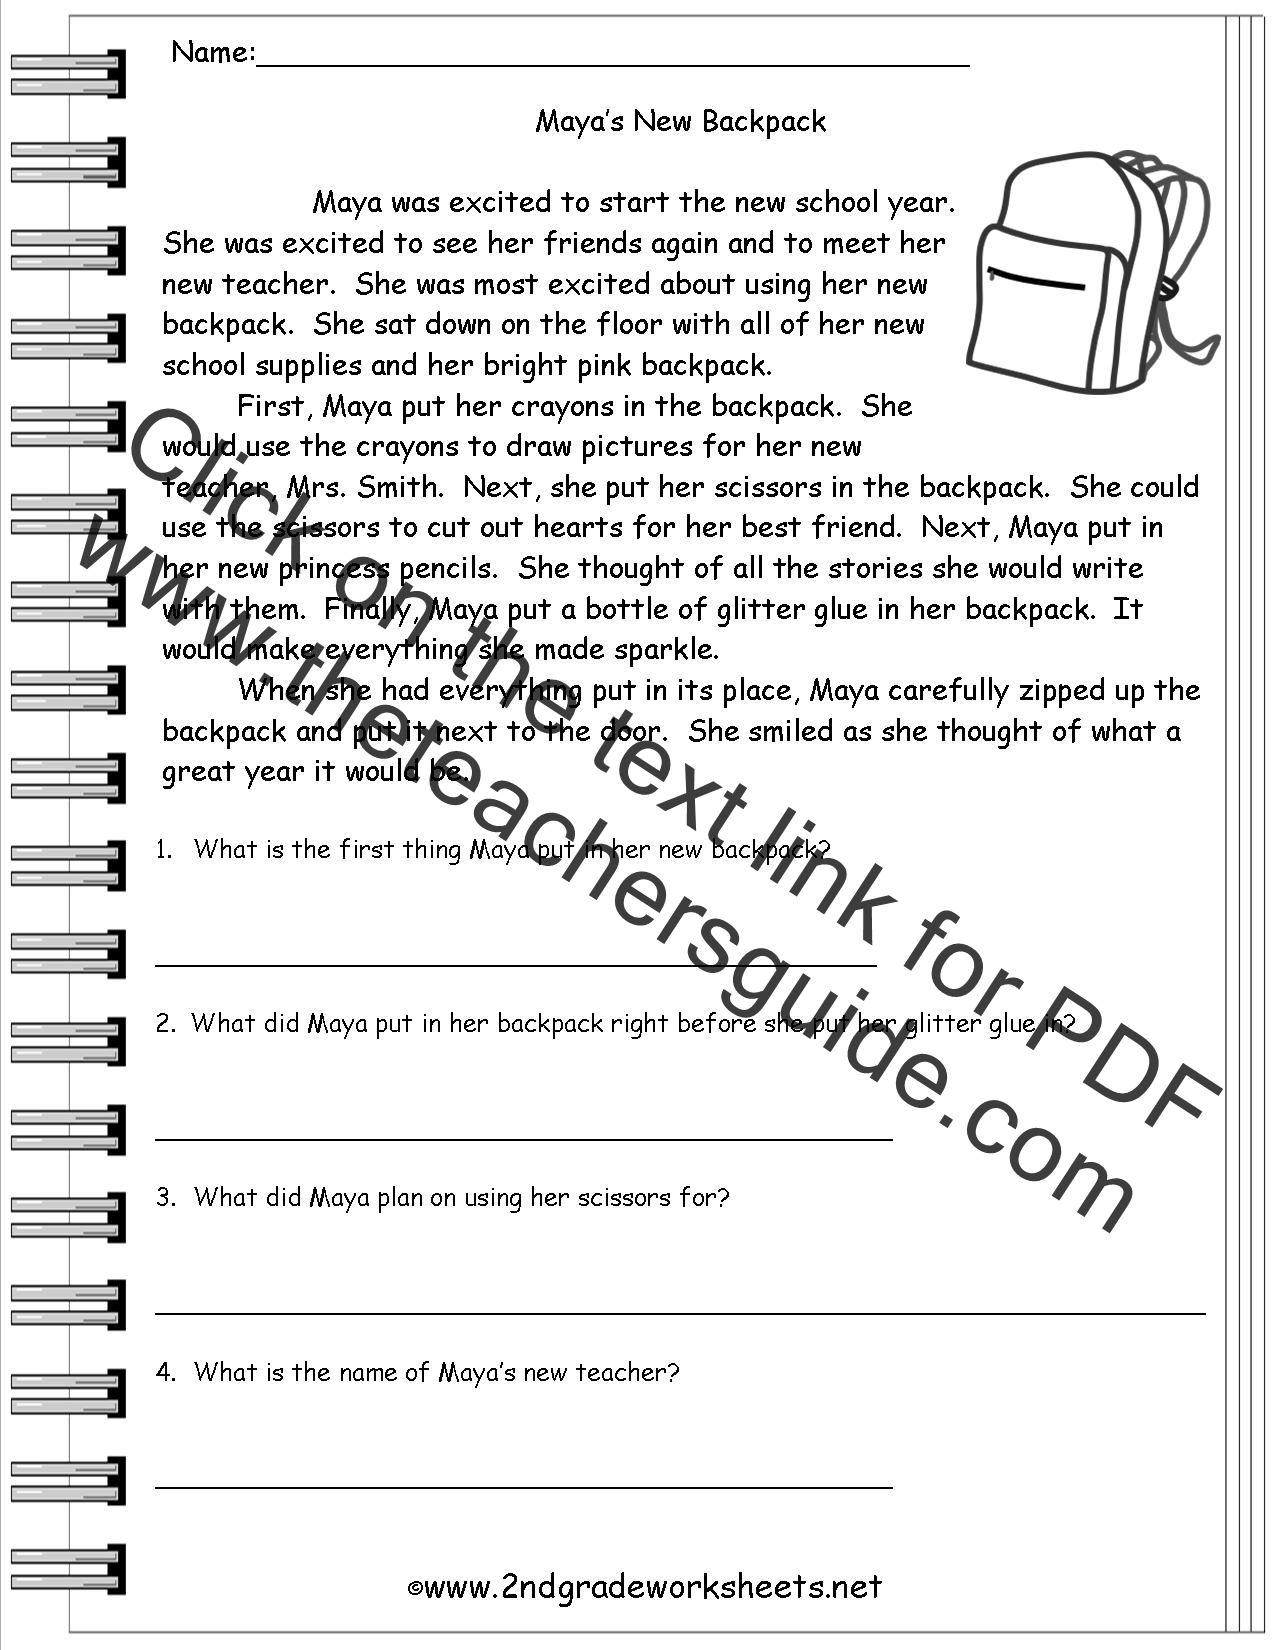 Worksheet Second Grade Reading Comprehension Stories reading worksheeets literature worksheets